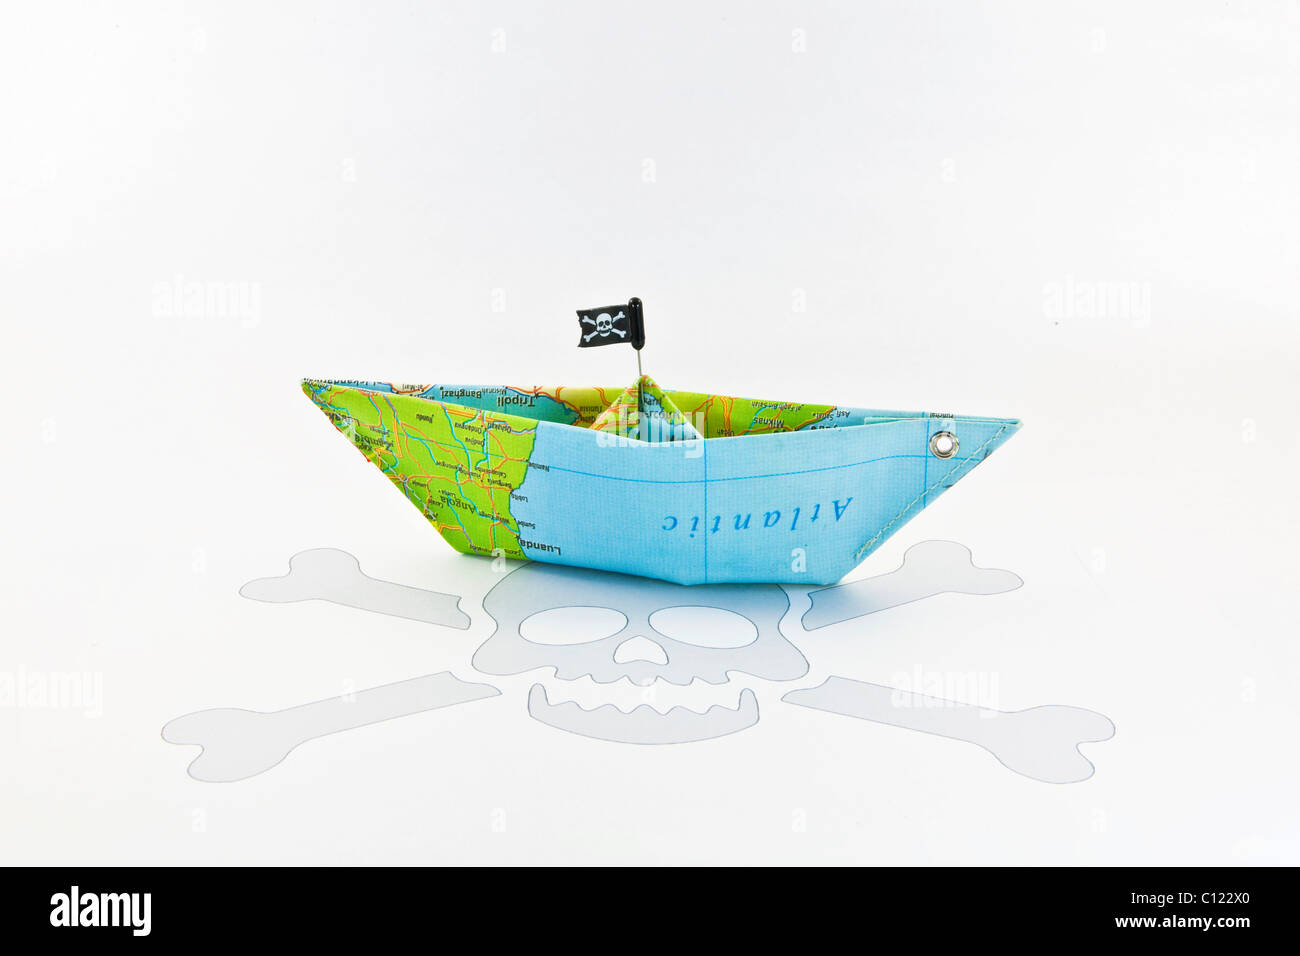 Pirate ship, piracy, money, symbolic image for ransom in a foreign currency - Stock Image